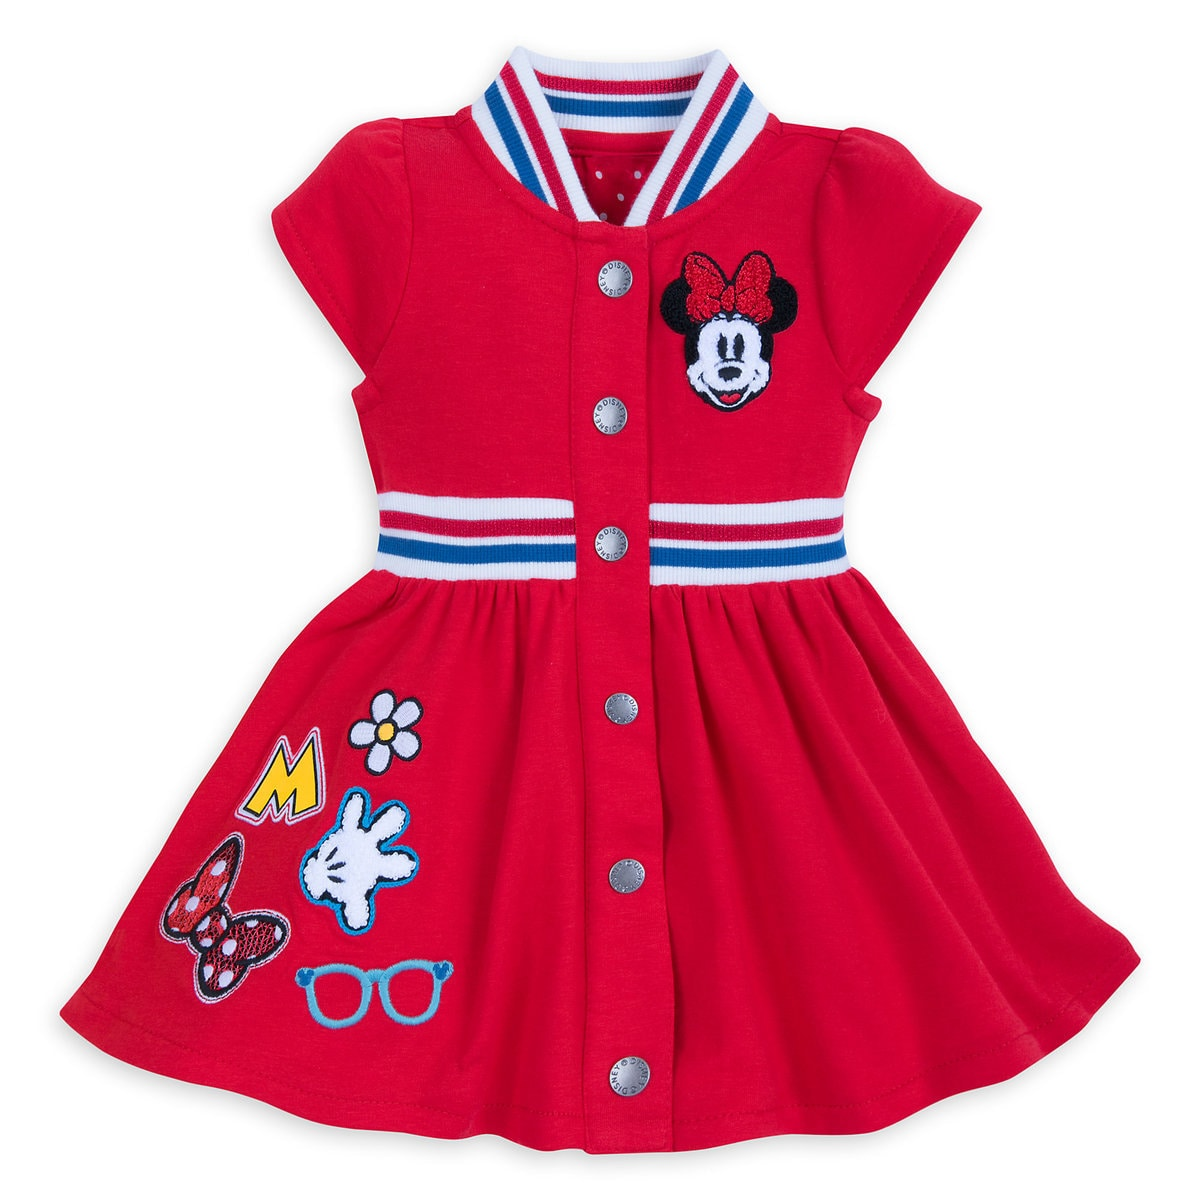 8d5685392 Product Image of Minnie Mouse Patches Dress for Baby # 1